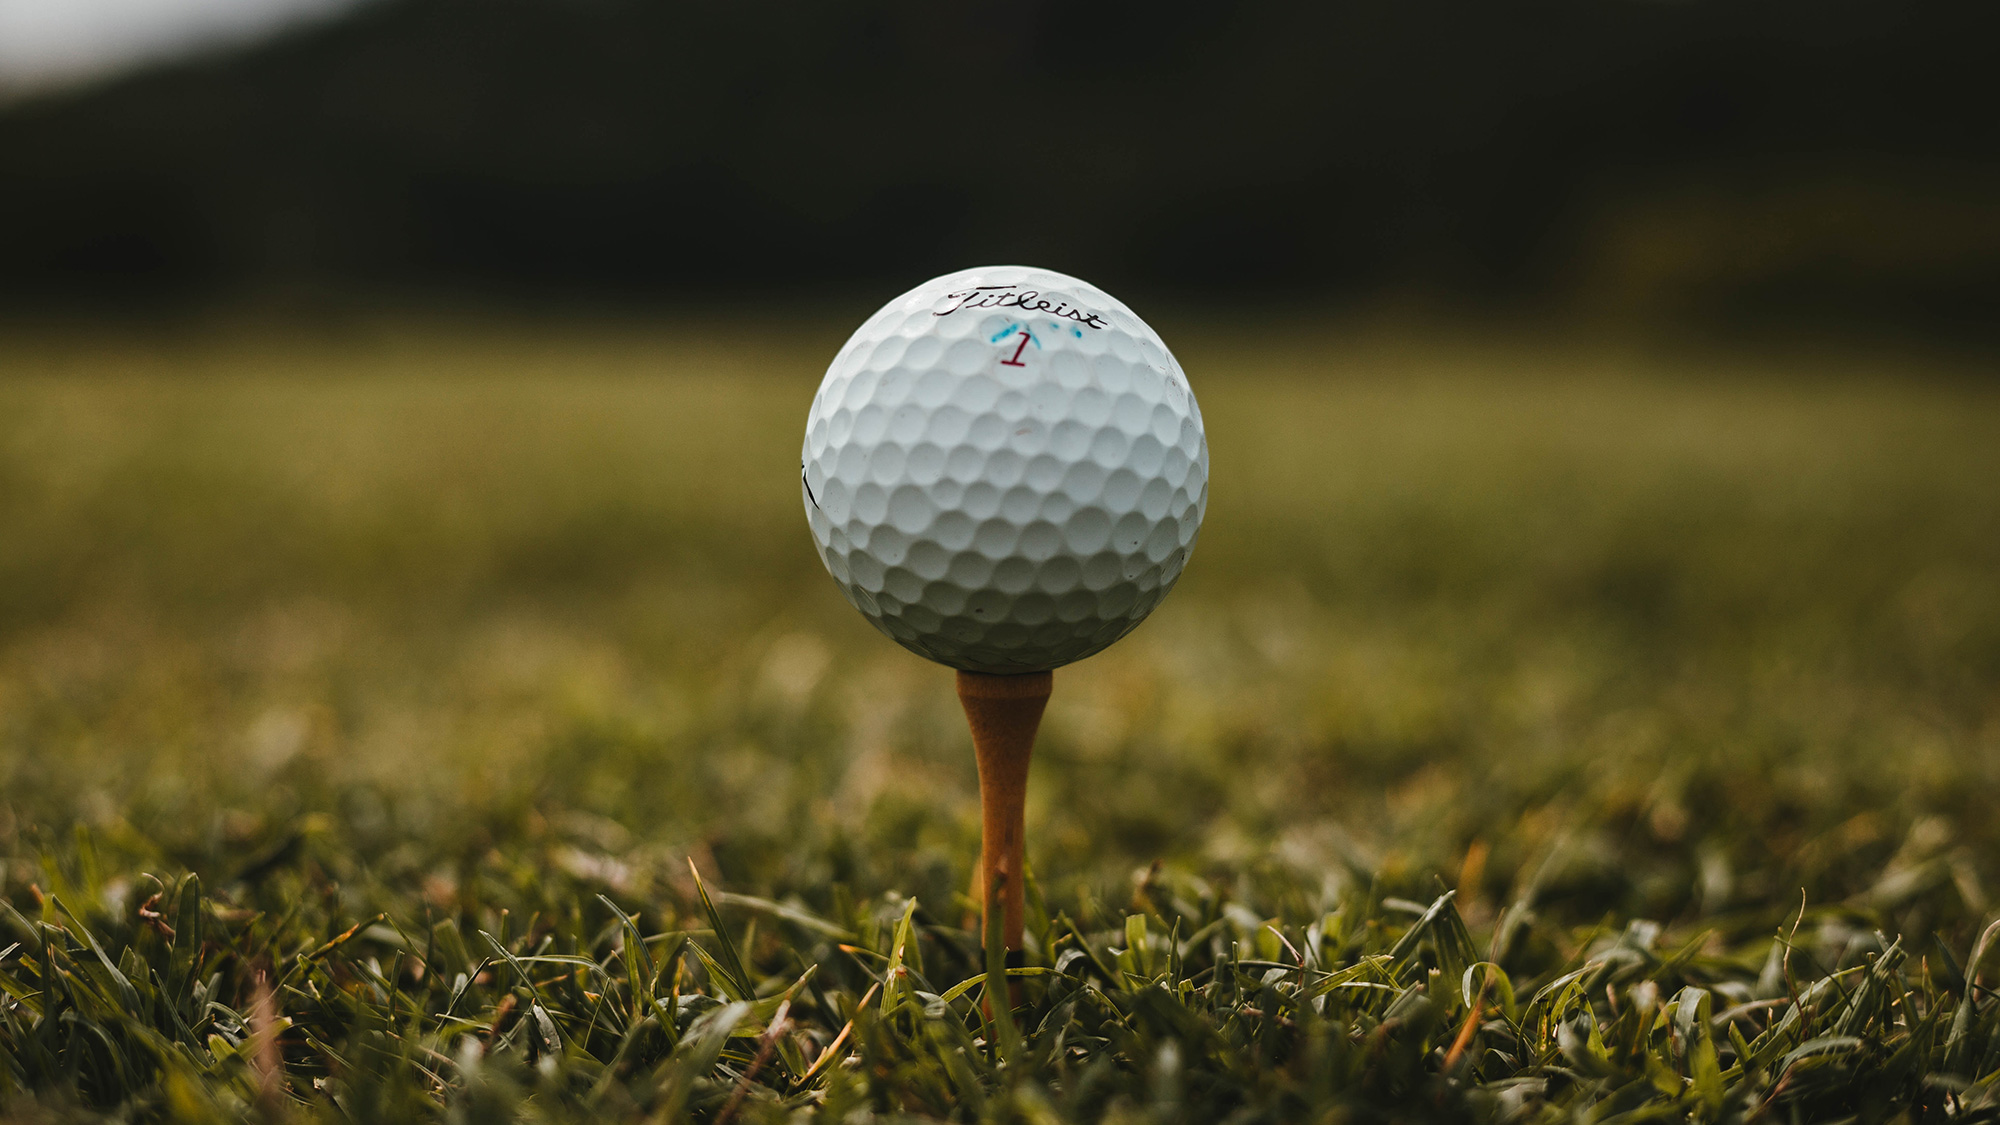 Best golf balls 2020: with the best golf ball you can play better golf  (hopefully) | T3